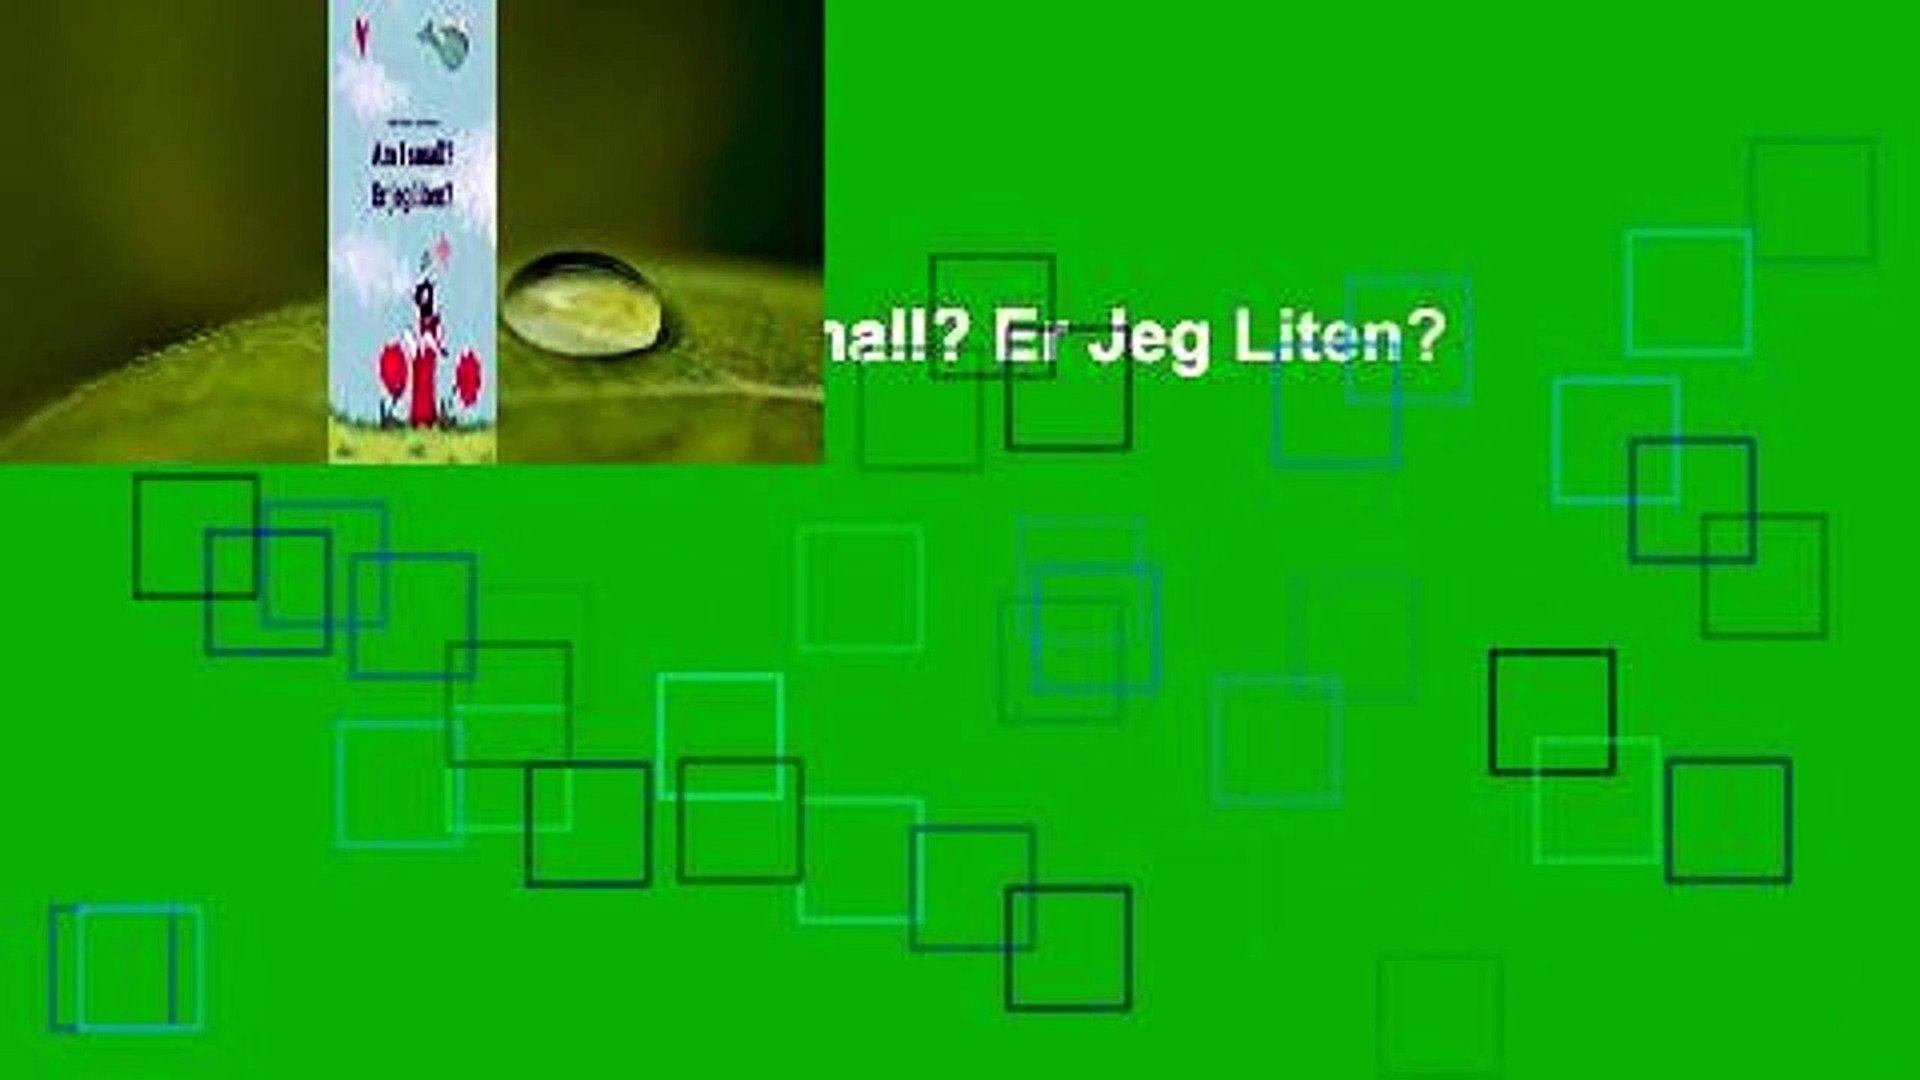 Er jeg liten? Childrens Picture Book English-Norwegian Am I small Bilingual Edition